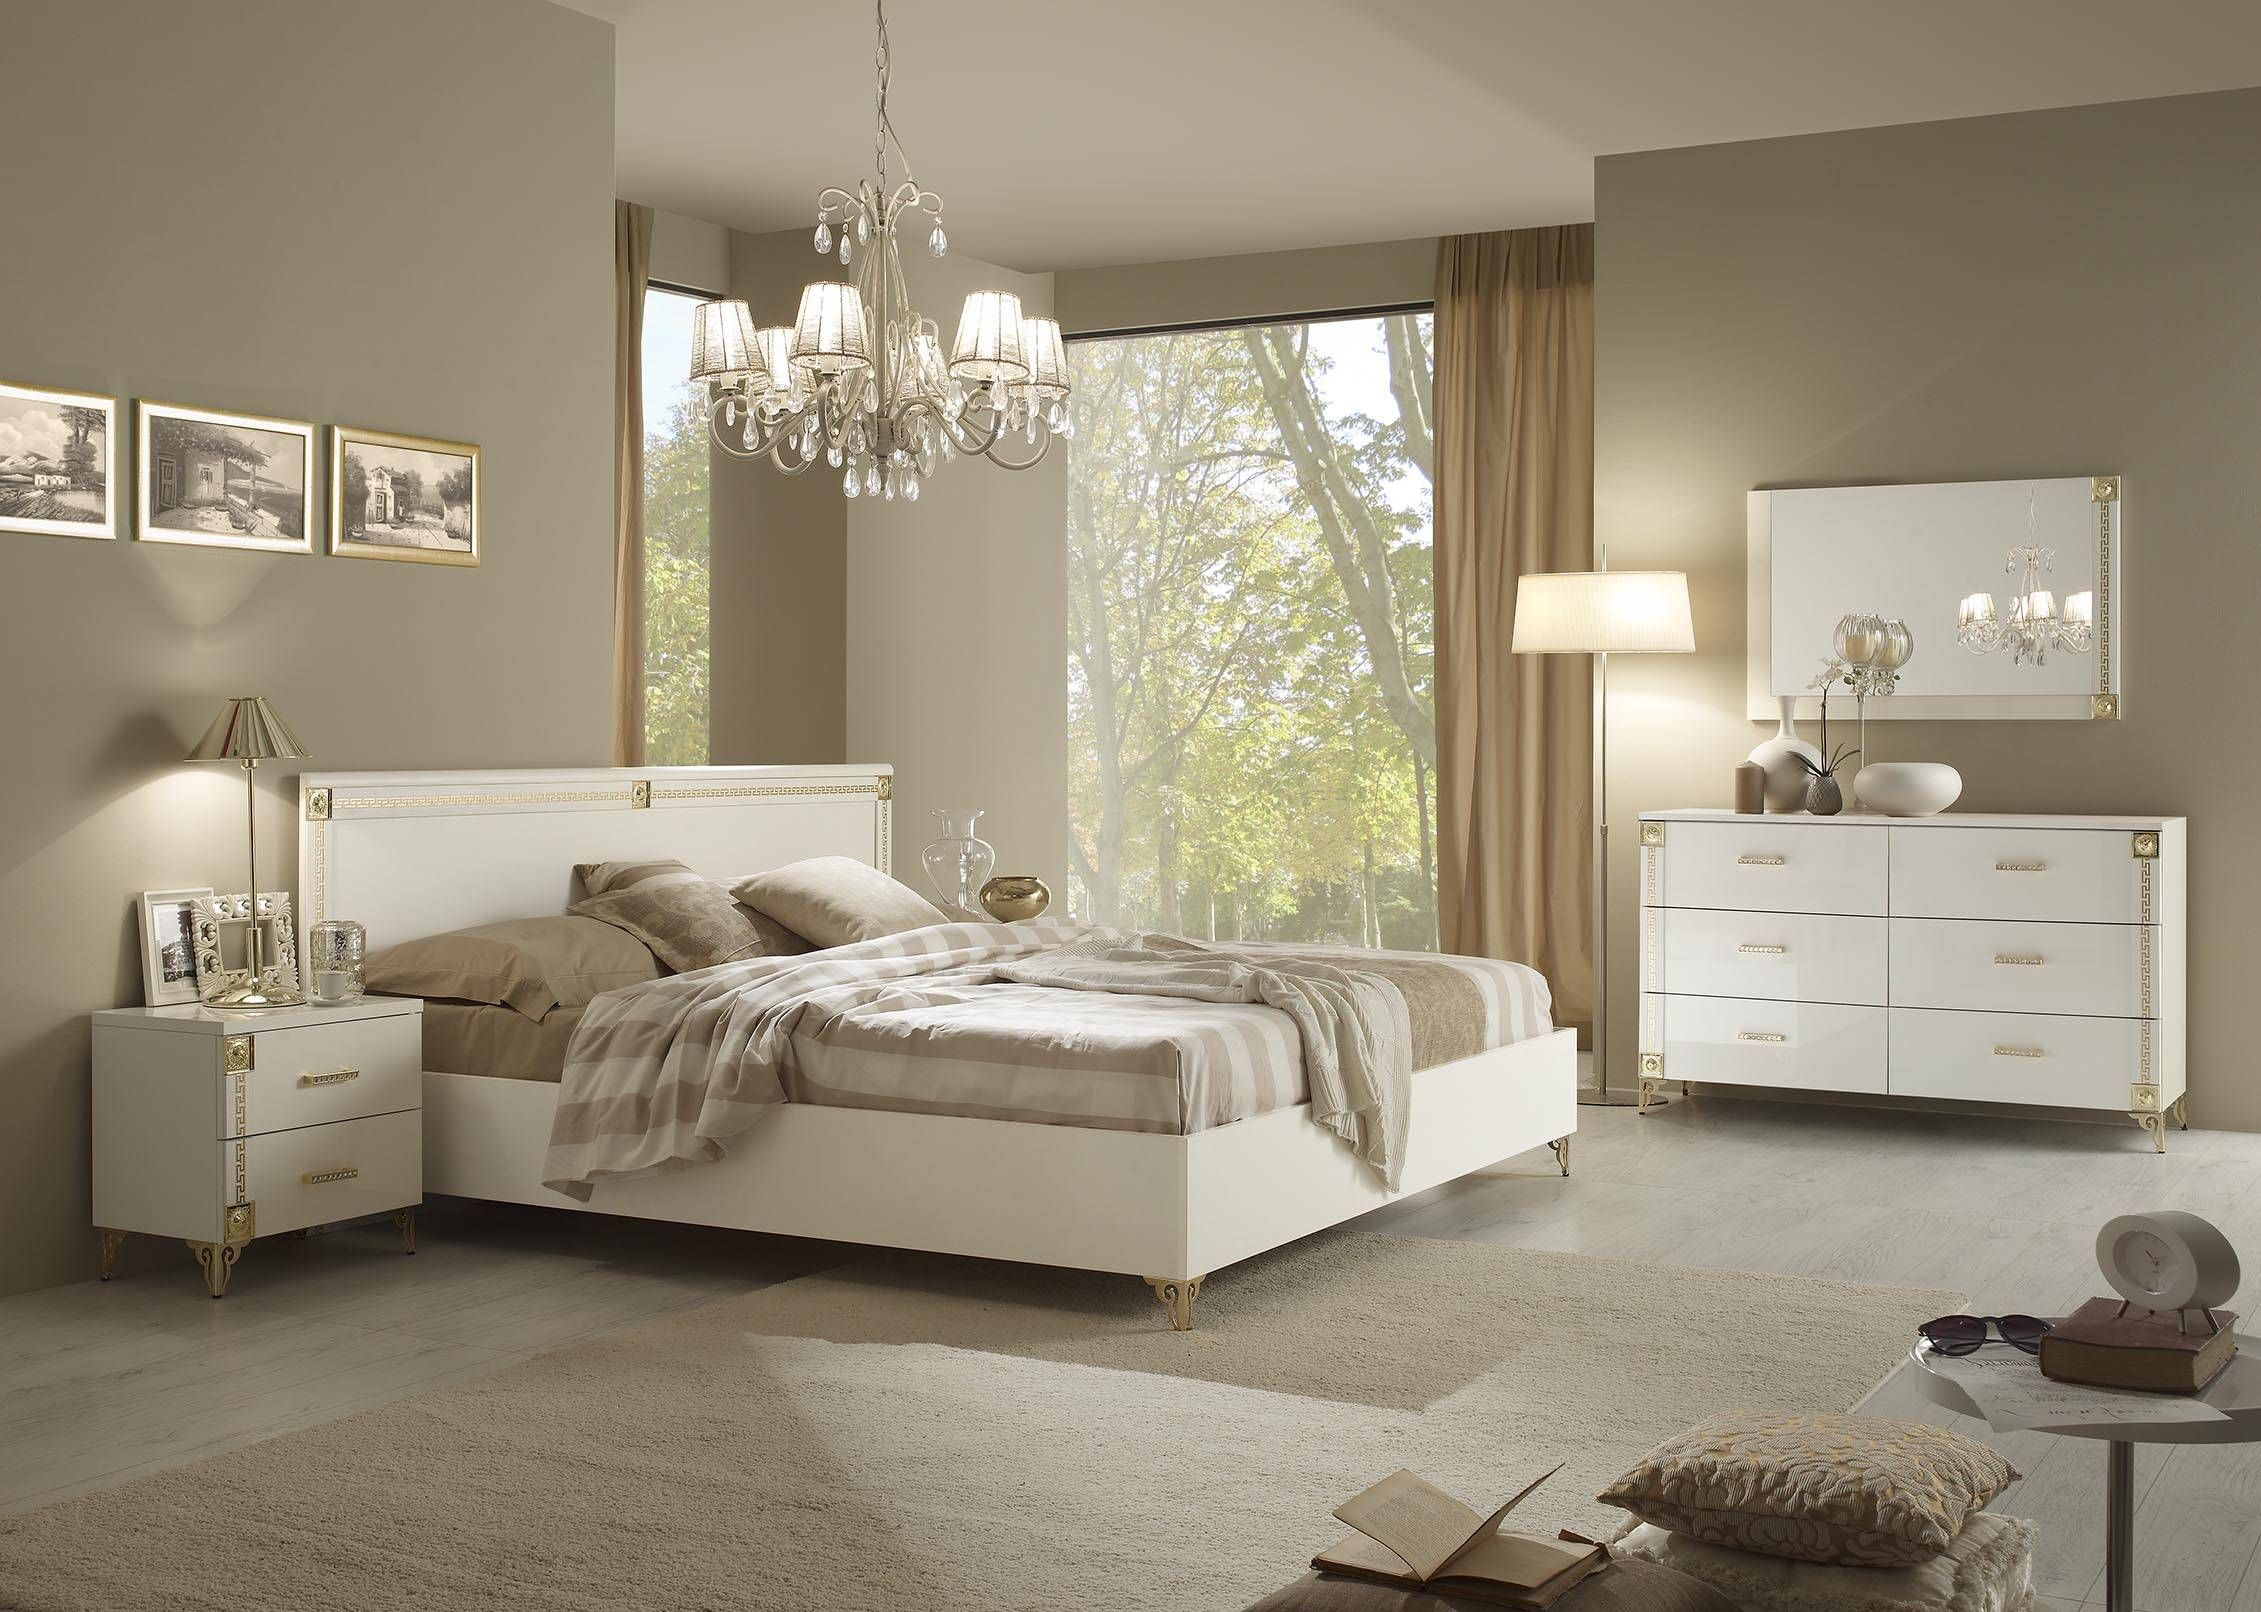 Upscale classy white bedroom suite with stylish gold accents ...